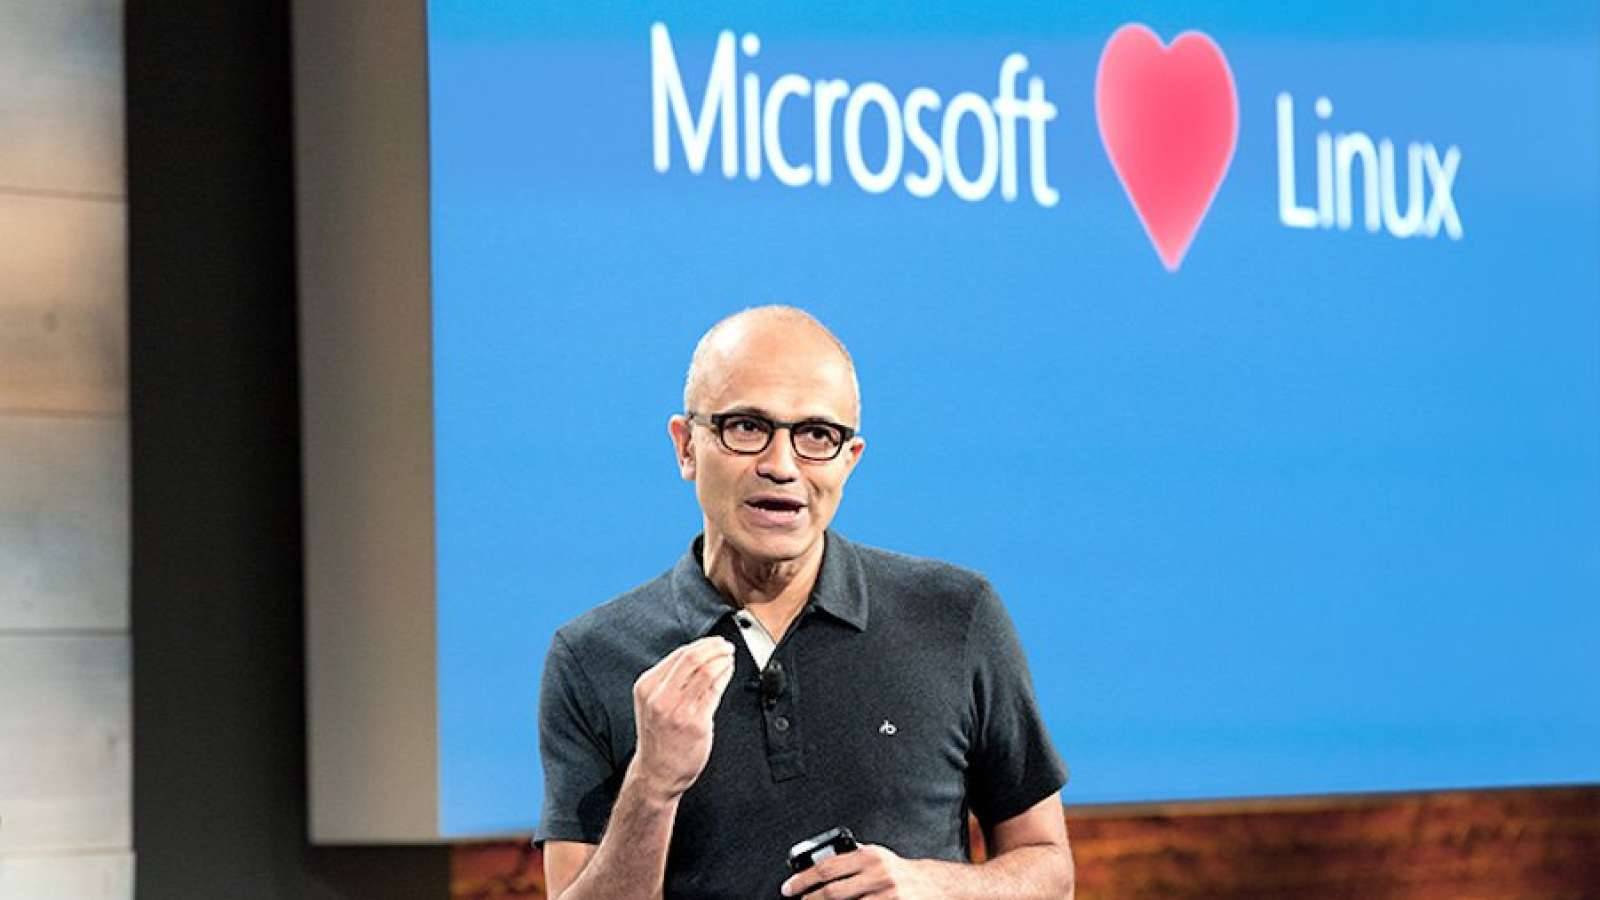 Microsoft brings 60,000 patents to the Open Invention Network